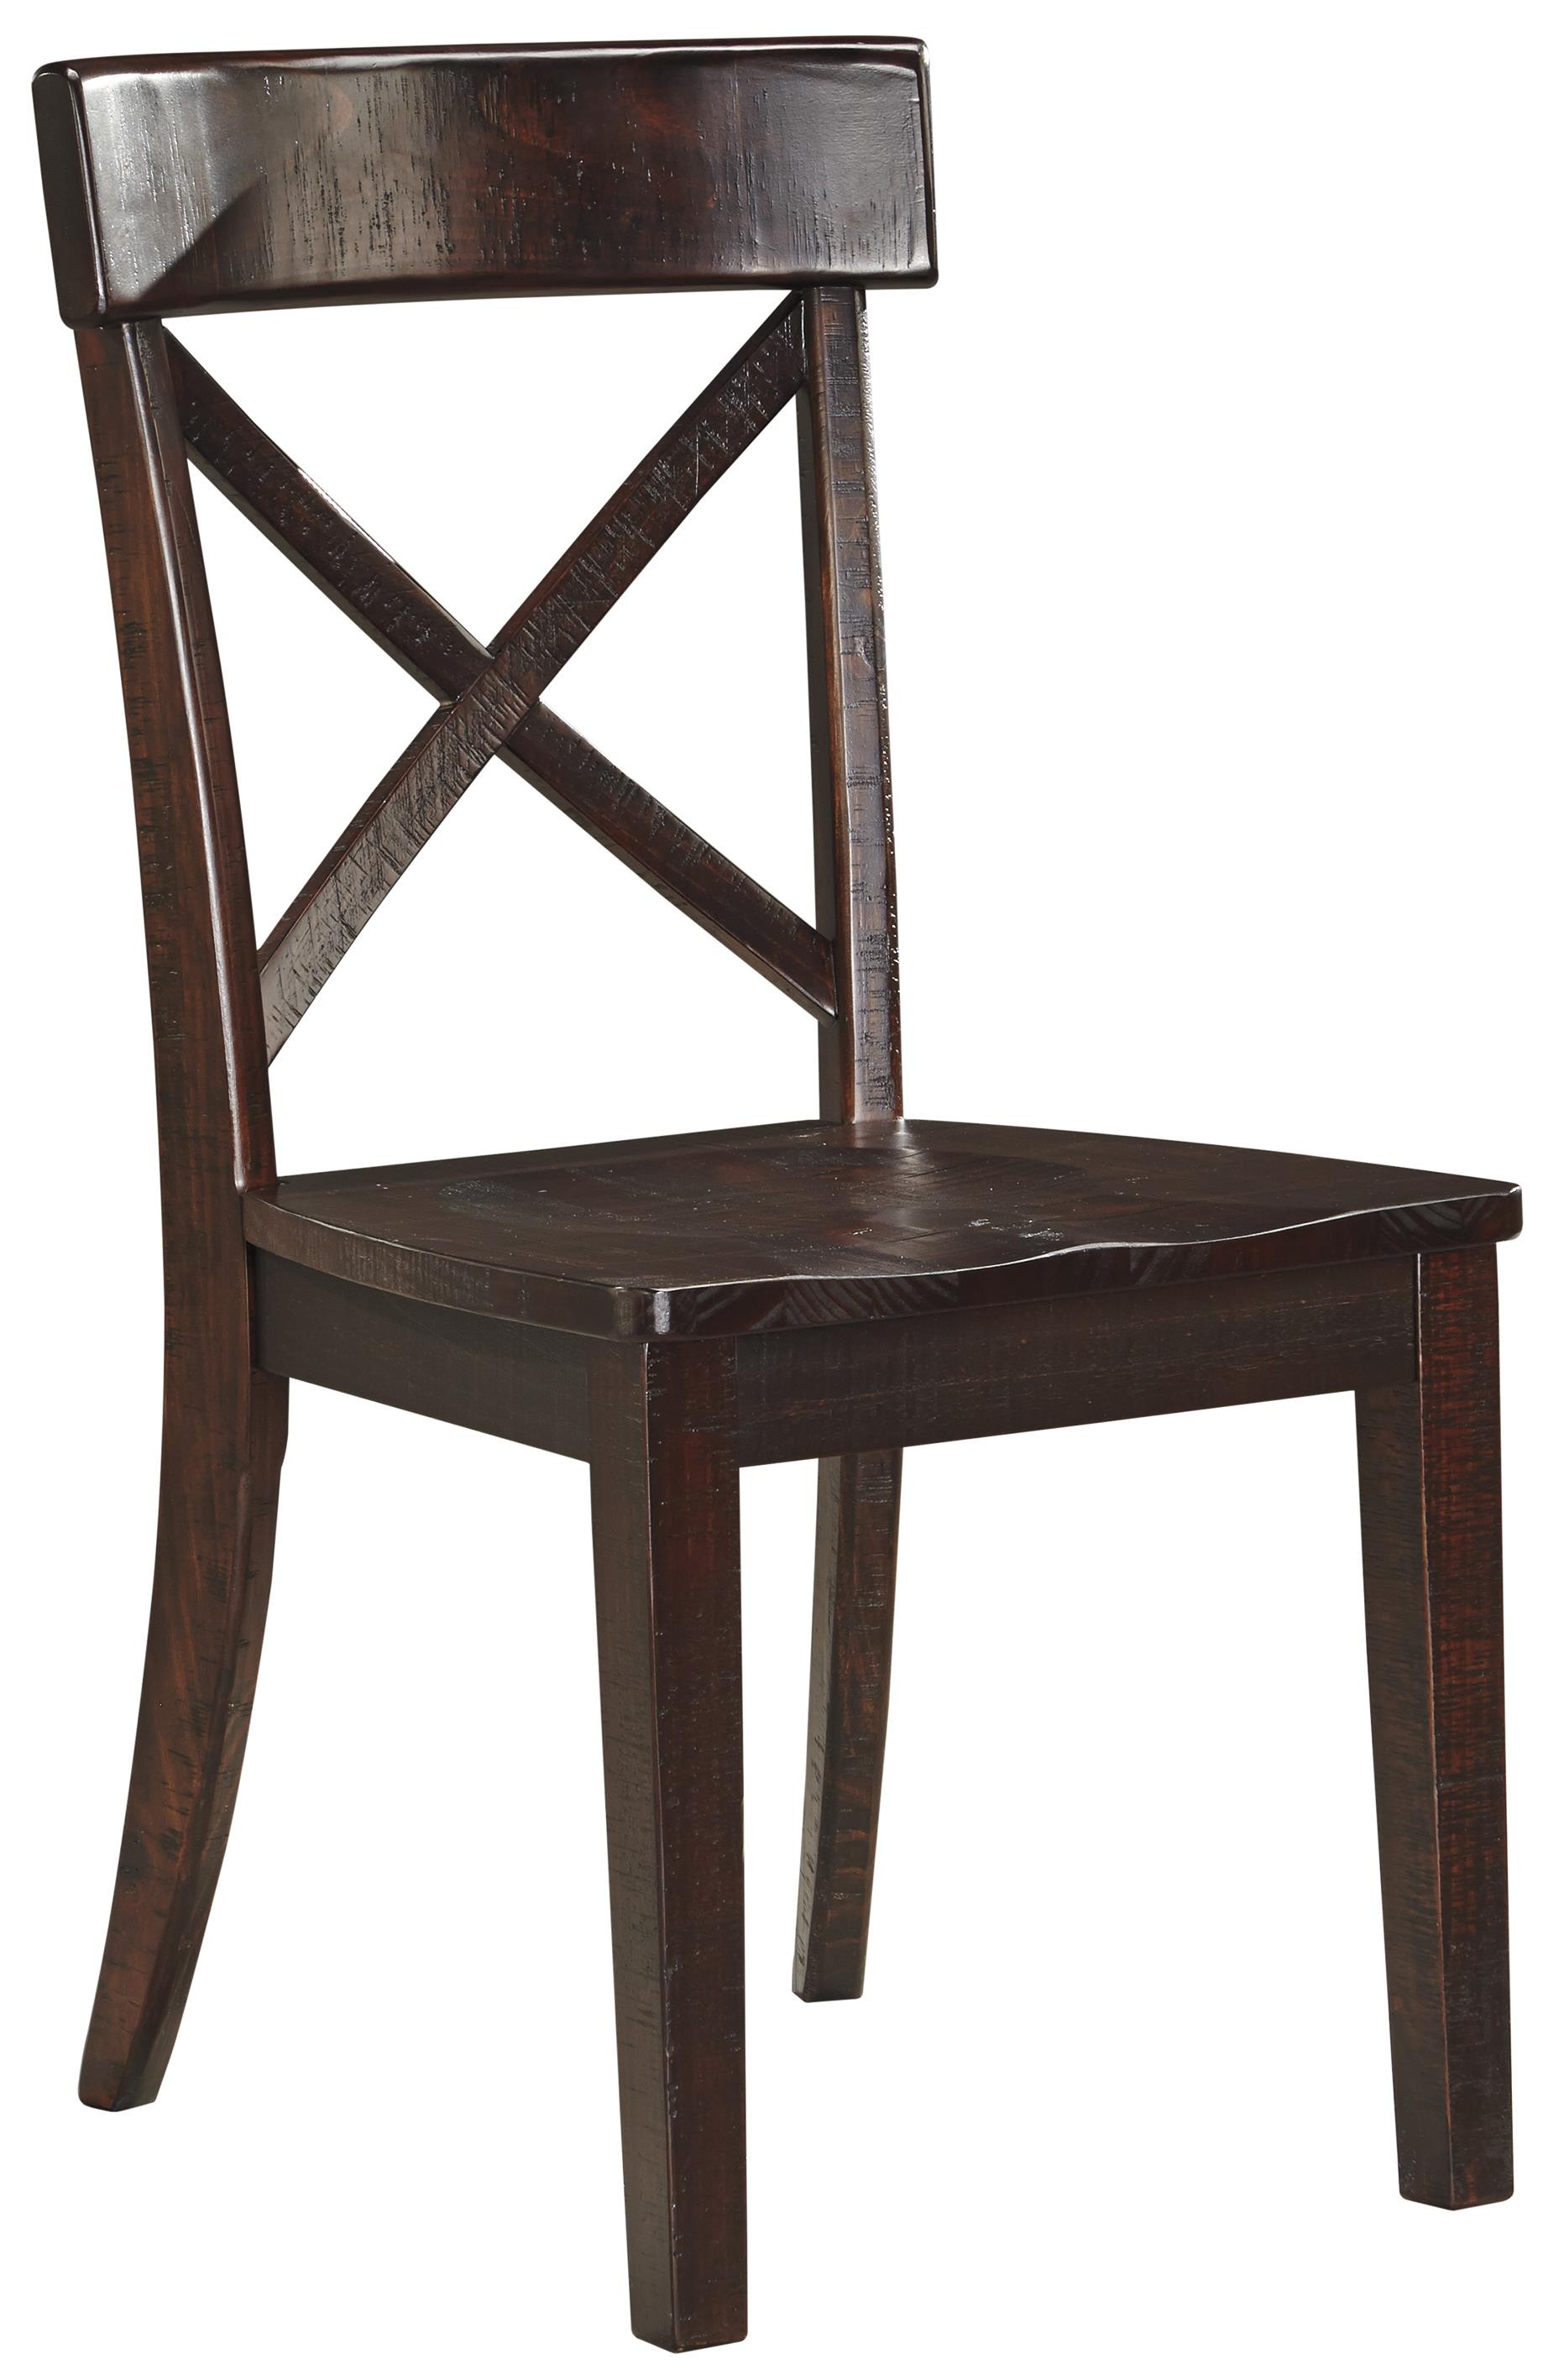 Signature Design by Ashley Gerlane Dining Room Side Chair - Item Number: D657-01